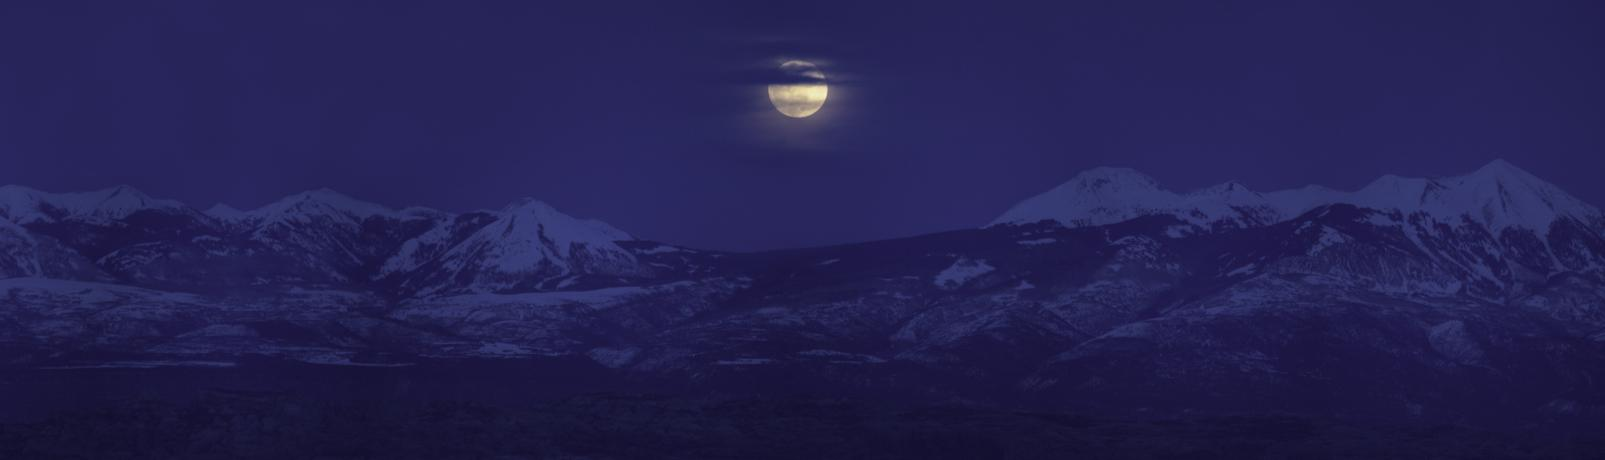 Supermoon rising over snow-capped Utah mountains